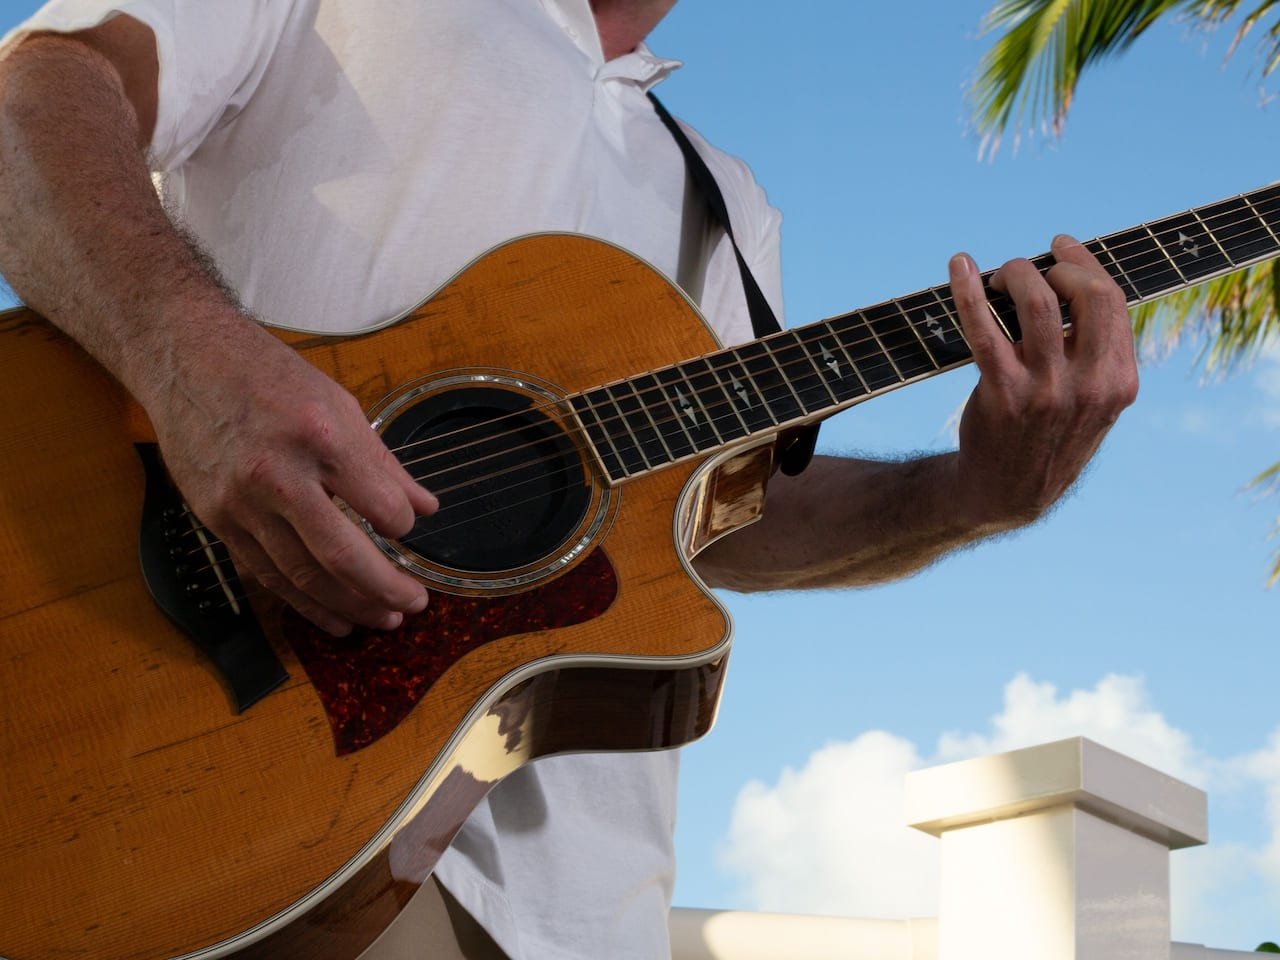 Musician with Guitar